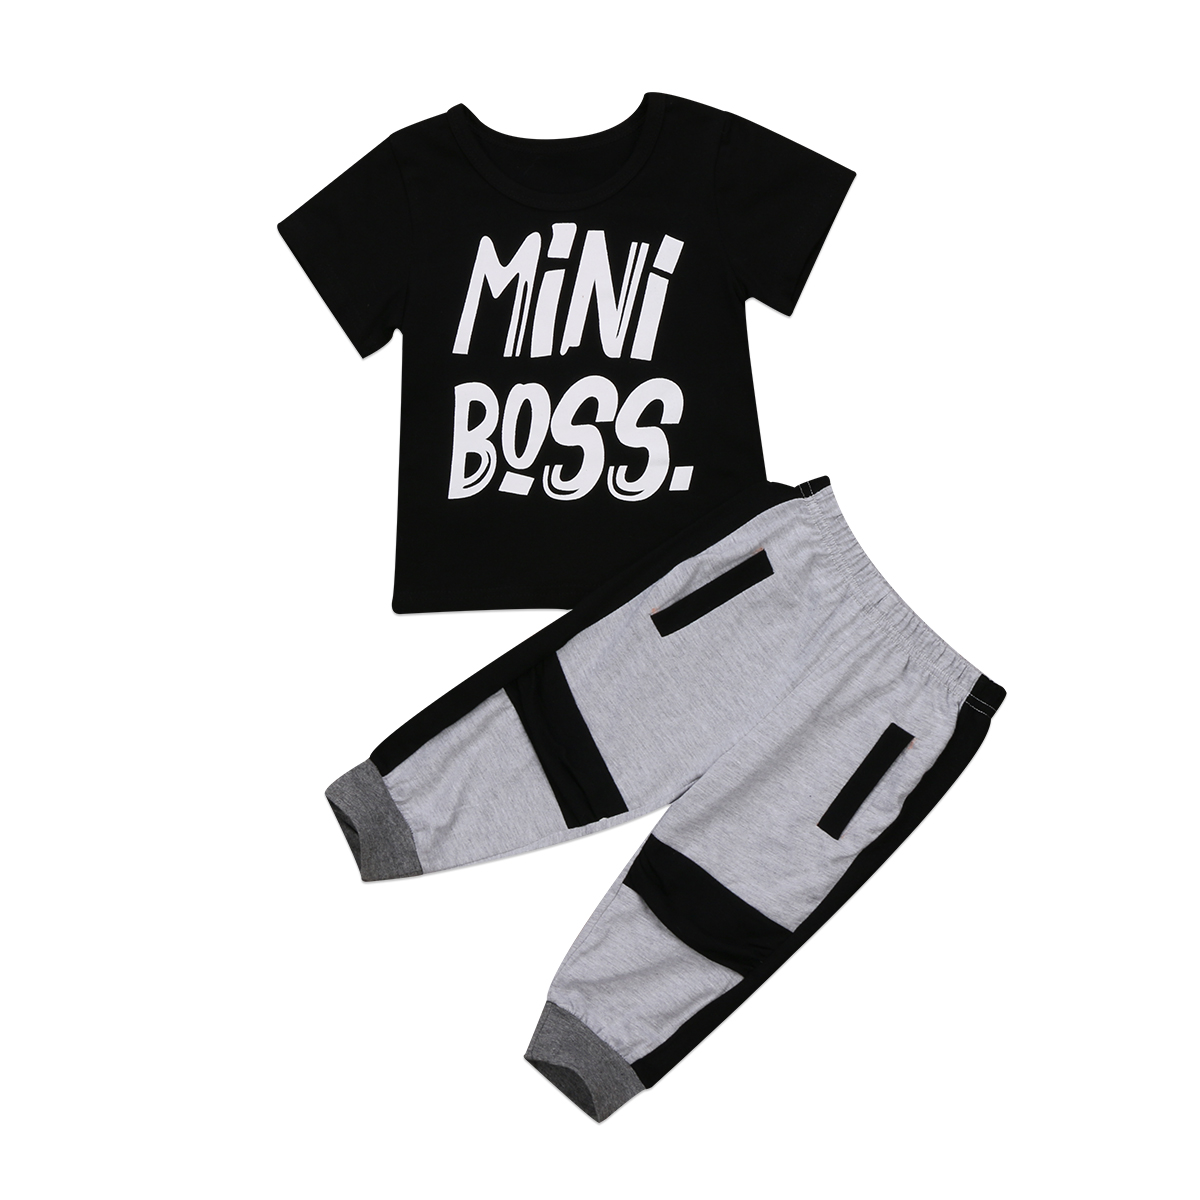 2Pcs Toddler Kids Baby Boy Clothes Sets T-shirt Tops Short Sleeve Pants Harem Outfits Set Cotton Clothing Baby Boys 1-6T newborn toddler baby boy girl camo t shirt tops pants outfits set clothes 0 24m cotton casual short sleeve kids sets